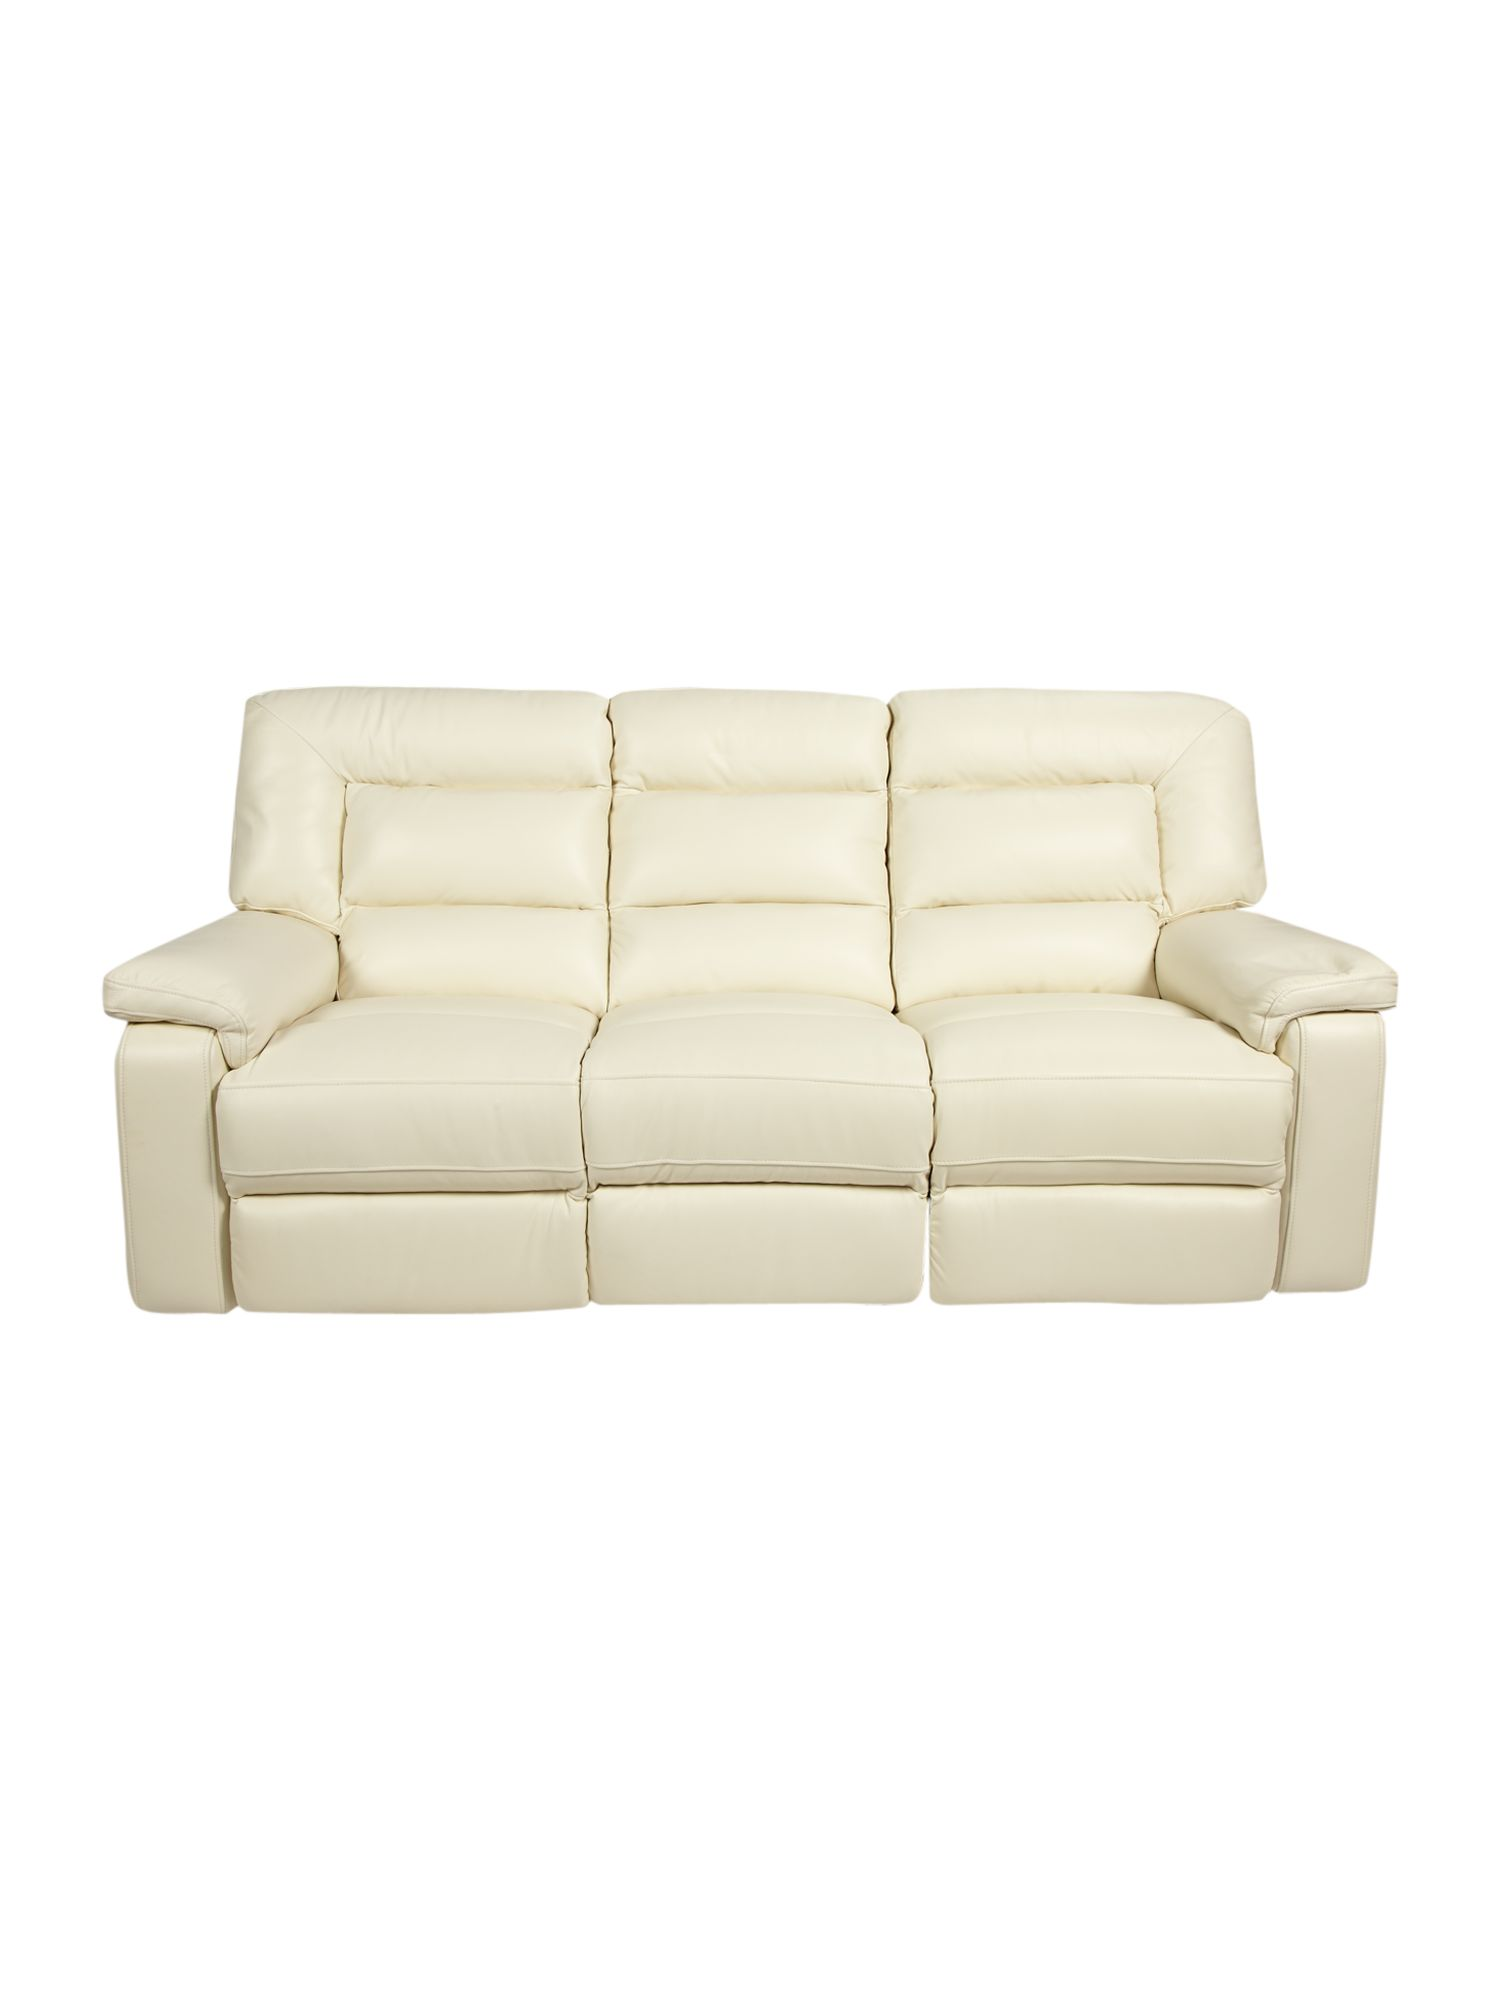 Verona sofa range in snow